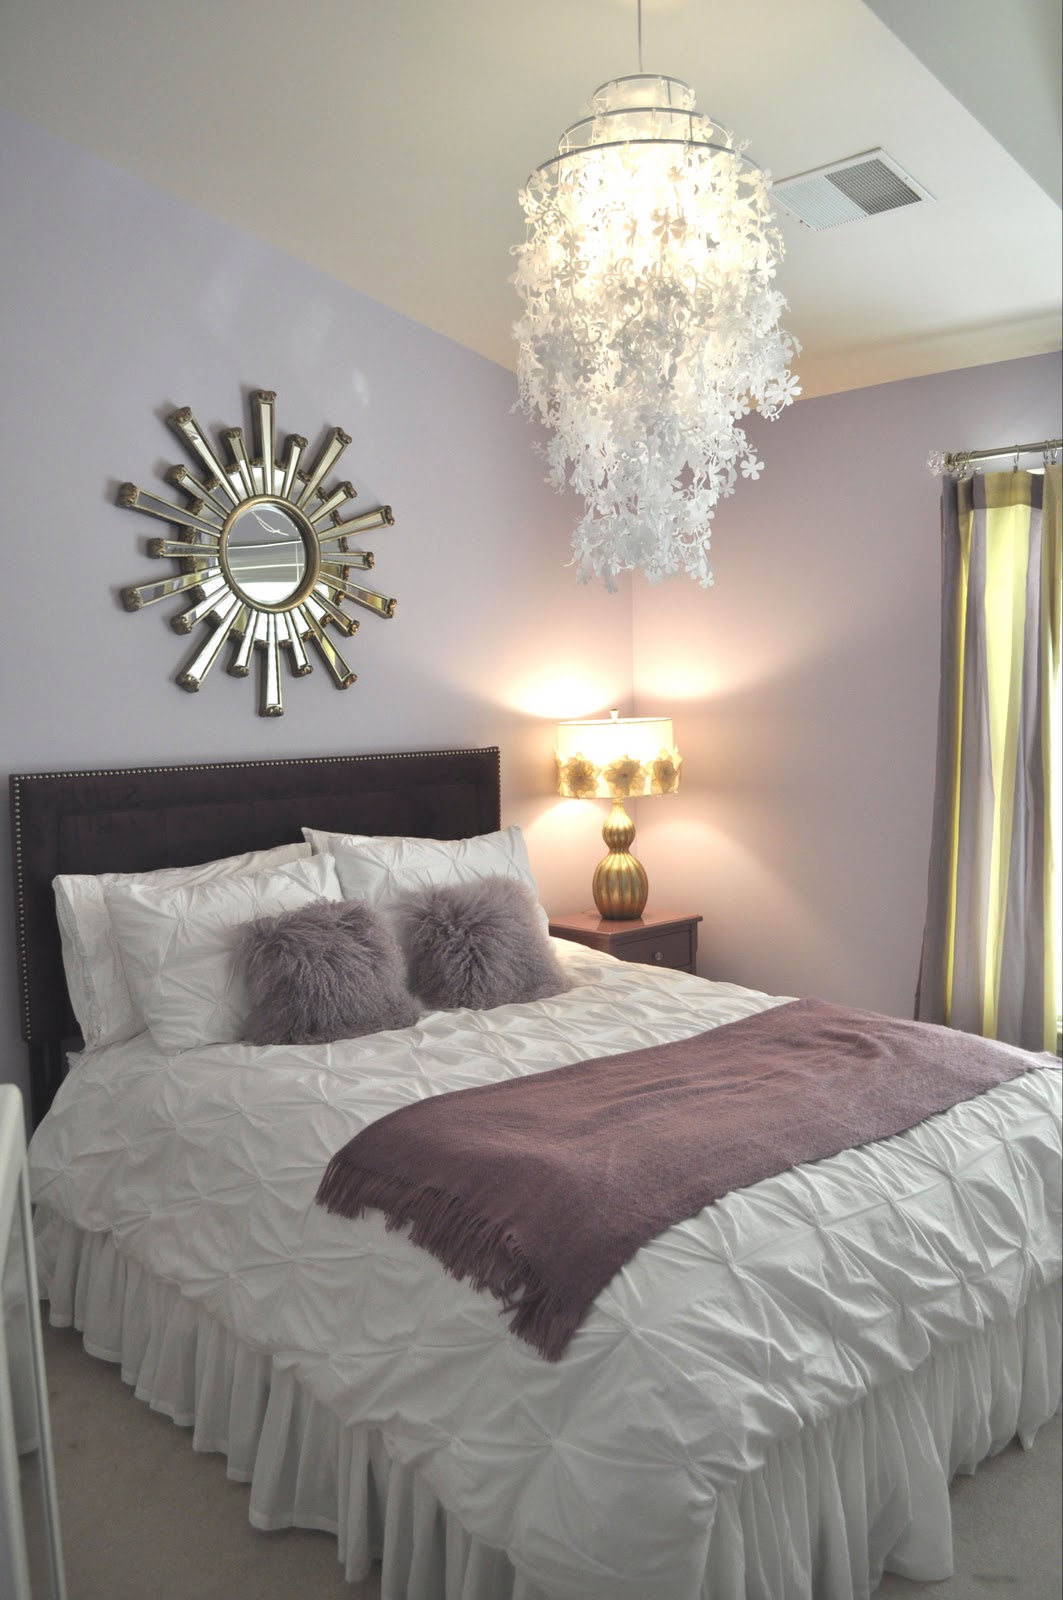 Jws interiors project complete before after tween for Bedroom ideas lilac